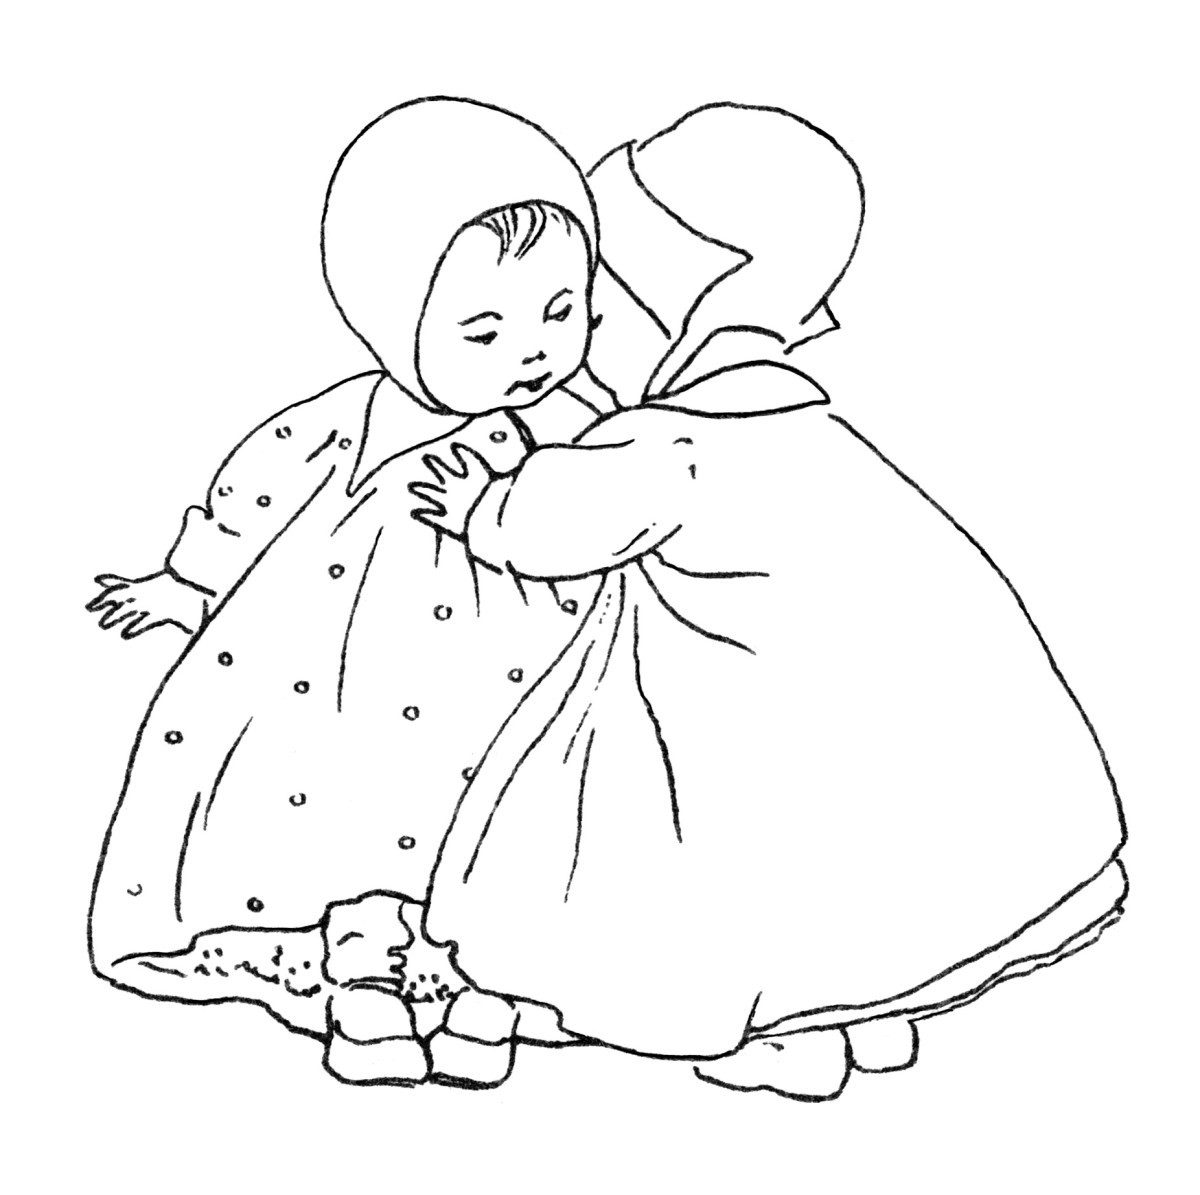 coloring pages easter bonnet song - photo#40